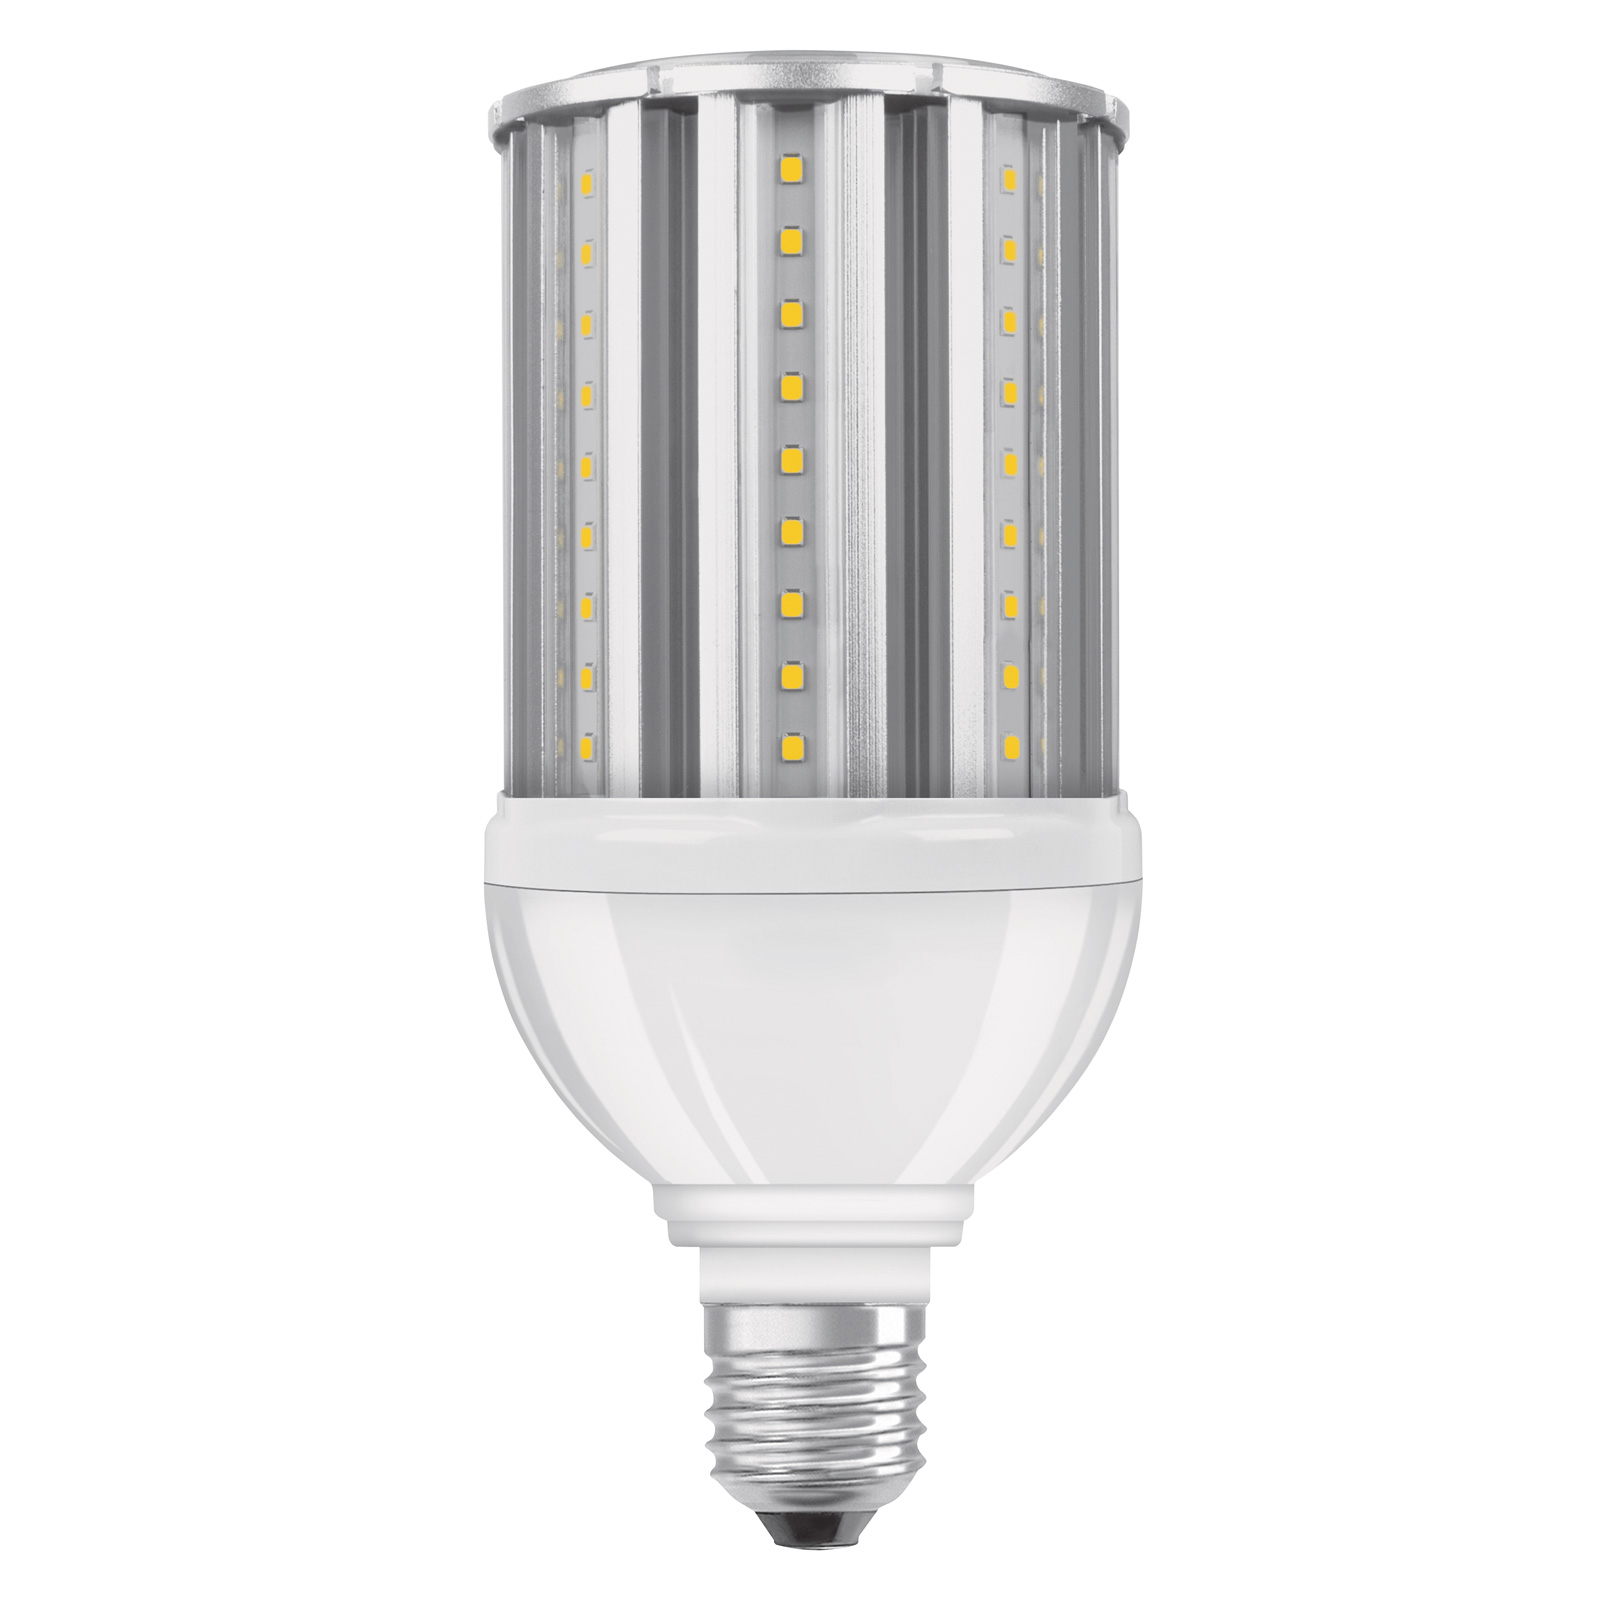 Led Lampen E27 10 Watt Led 3000 Kelvin Temperatura De Color Ilux Led Technology 5000k